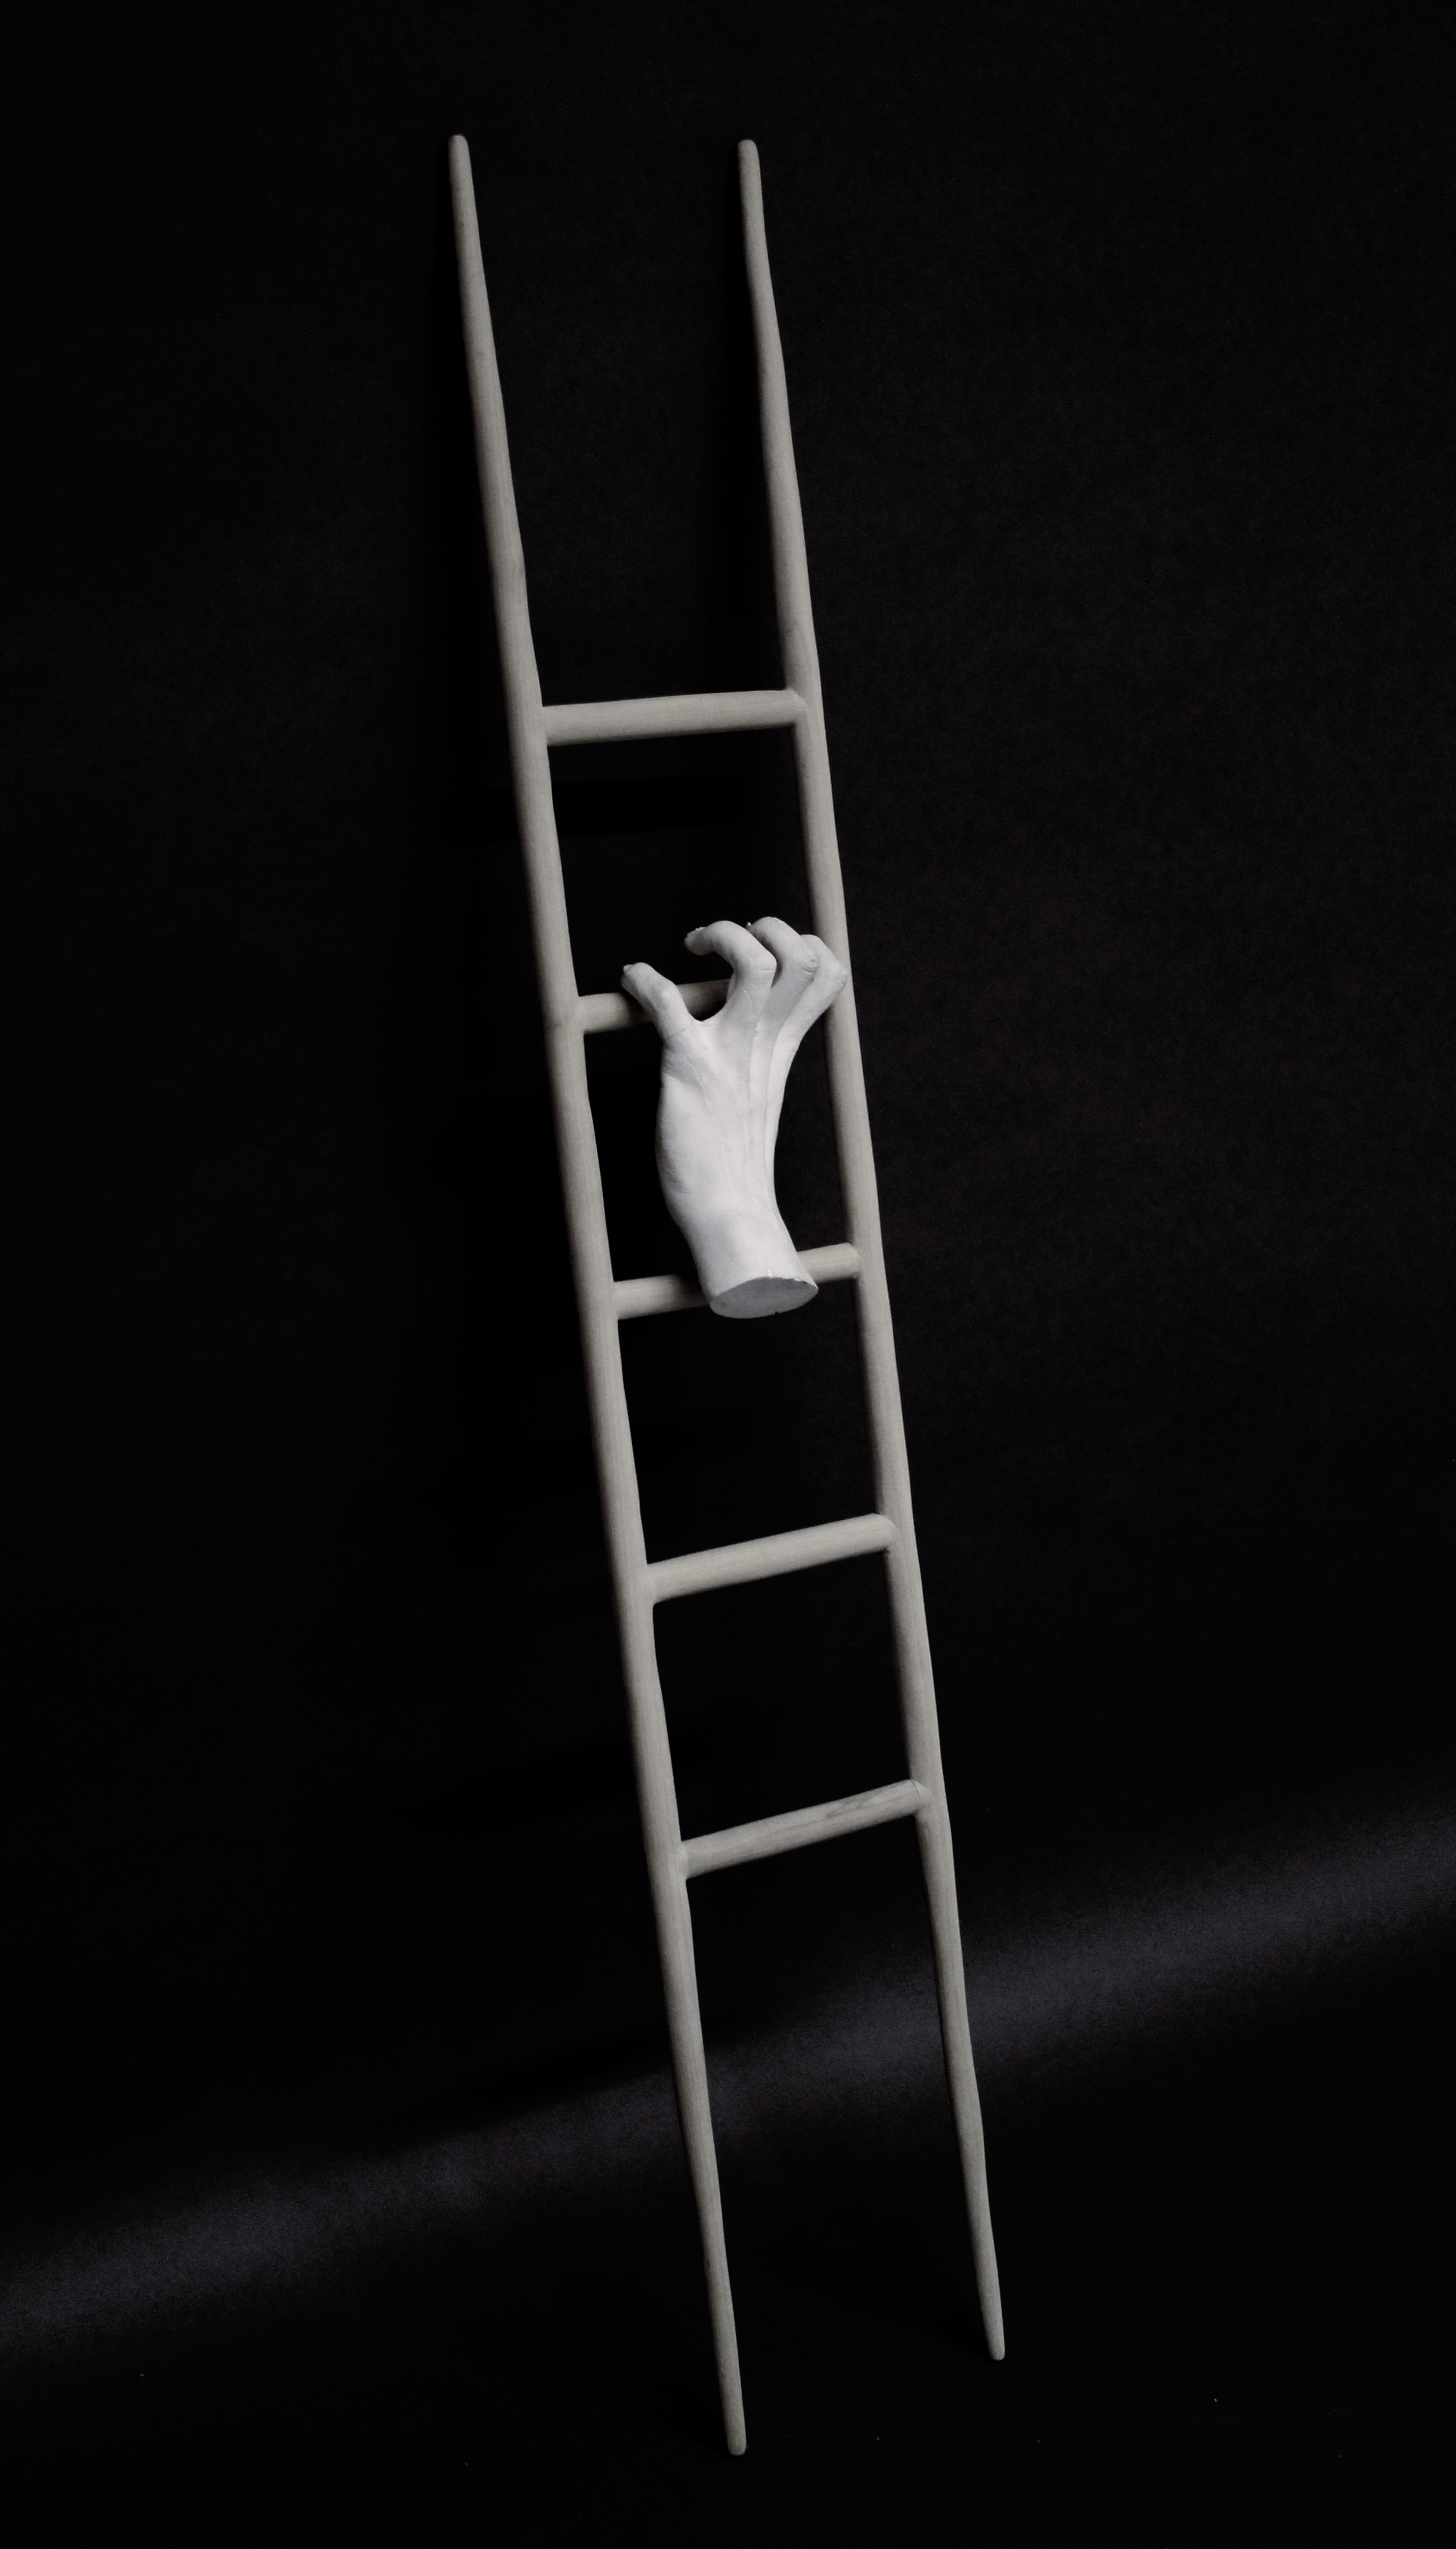 sculpture wood ladder hand ascension American dream commentary